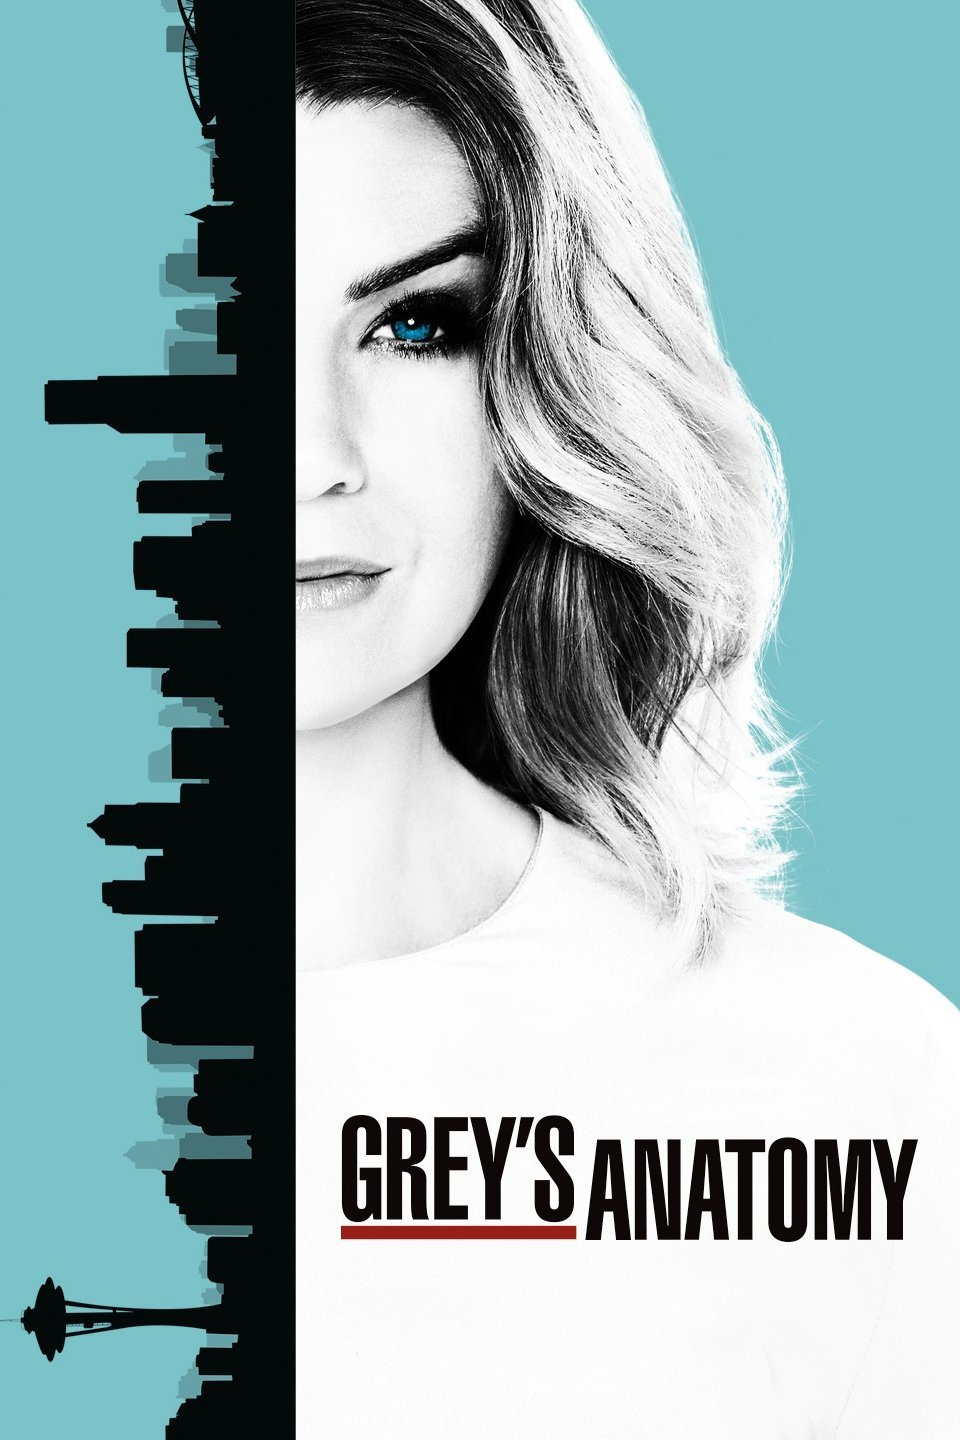 Greys Anatomy Season 14 Episode 24 Download HDTV 480p 720p